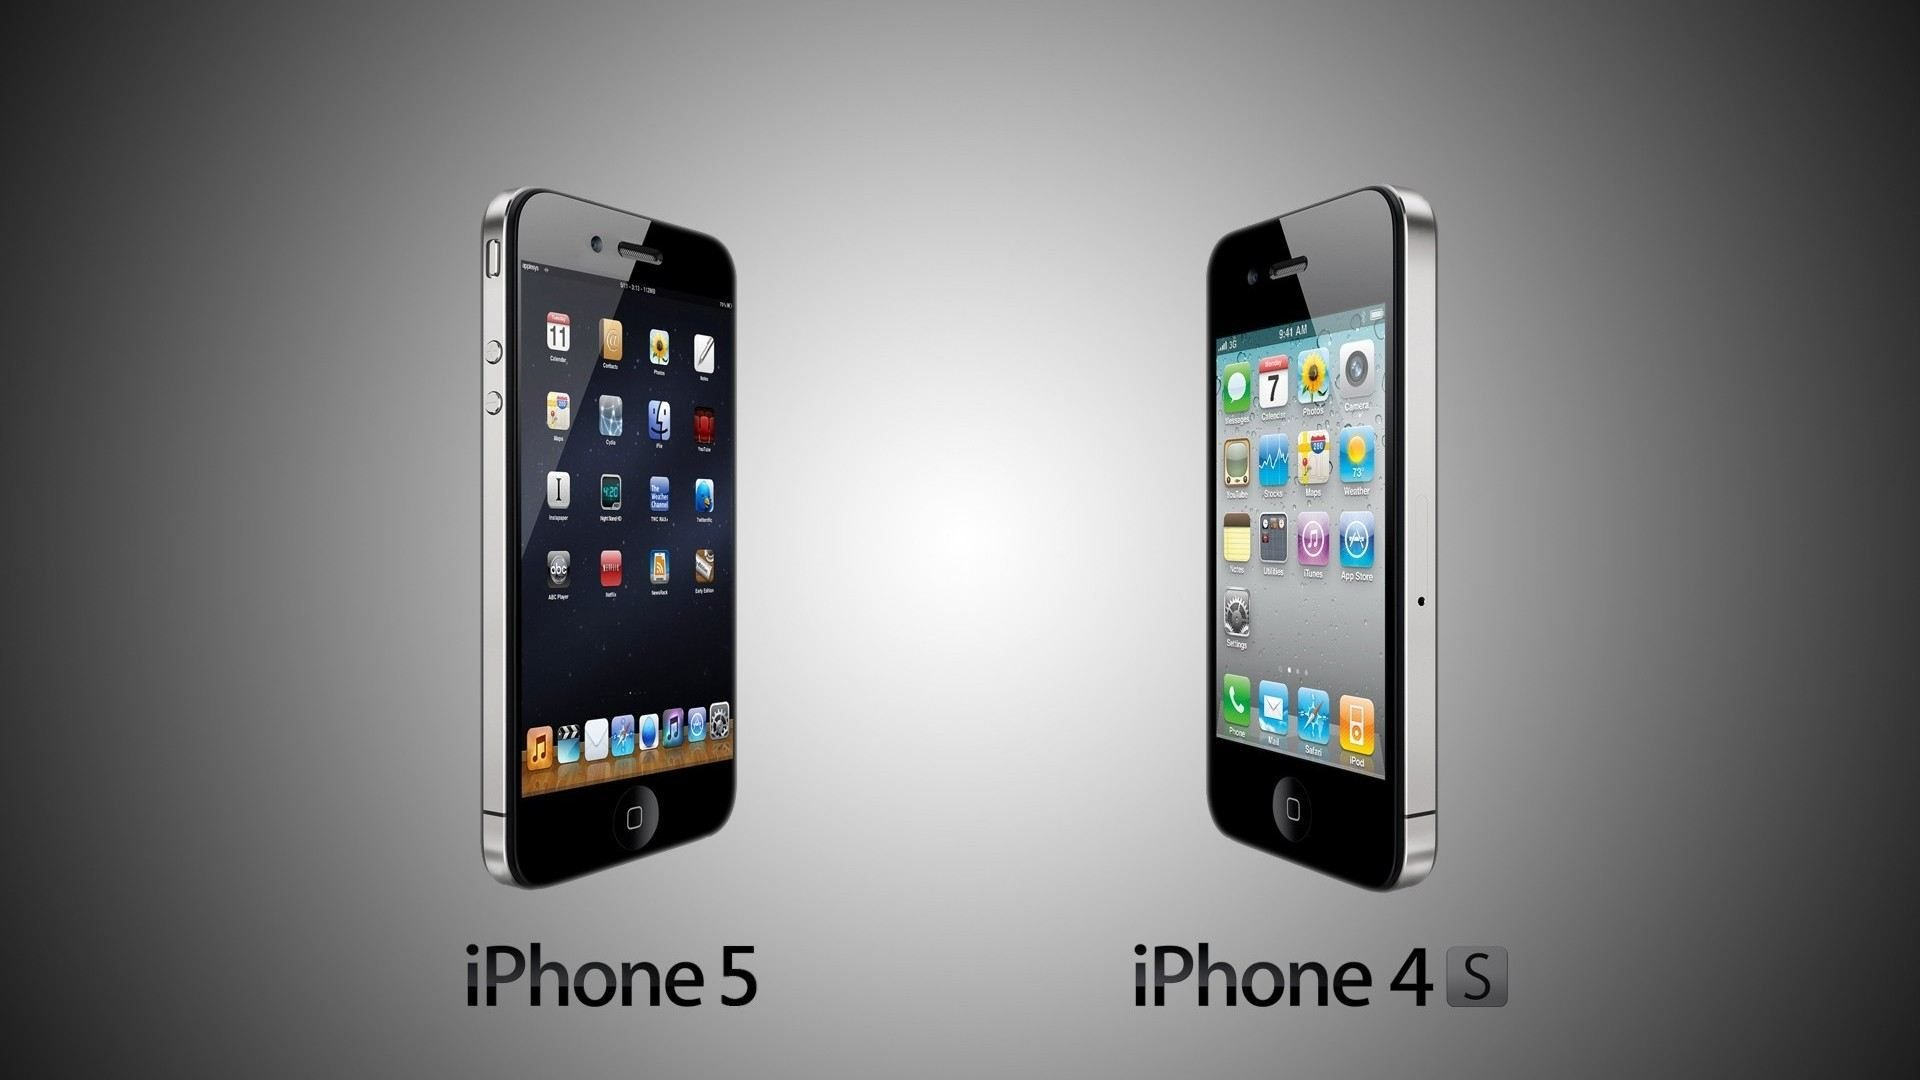 Hd wallpaper for iphone 5s - Iphone 5 Vs Iphone 4s High Definition Wallpapers Hd Wallpapers